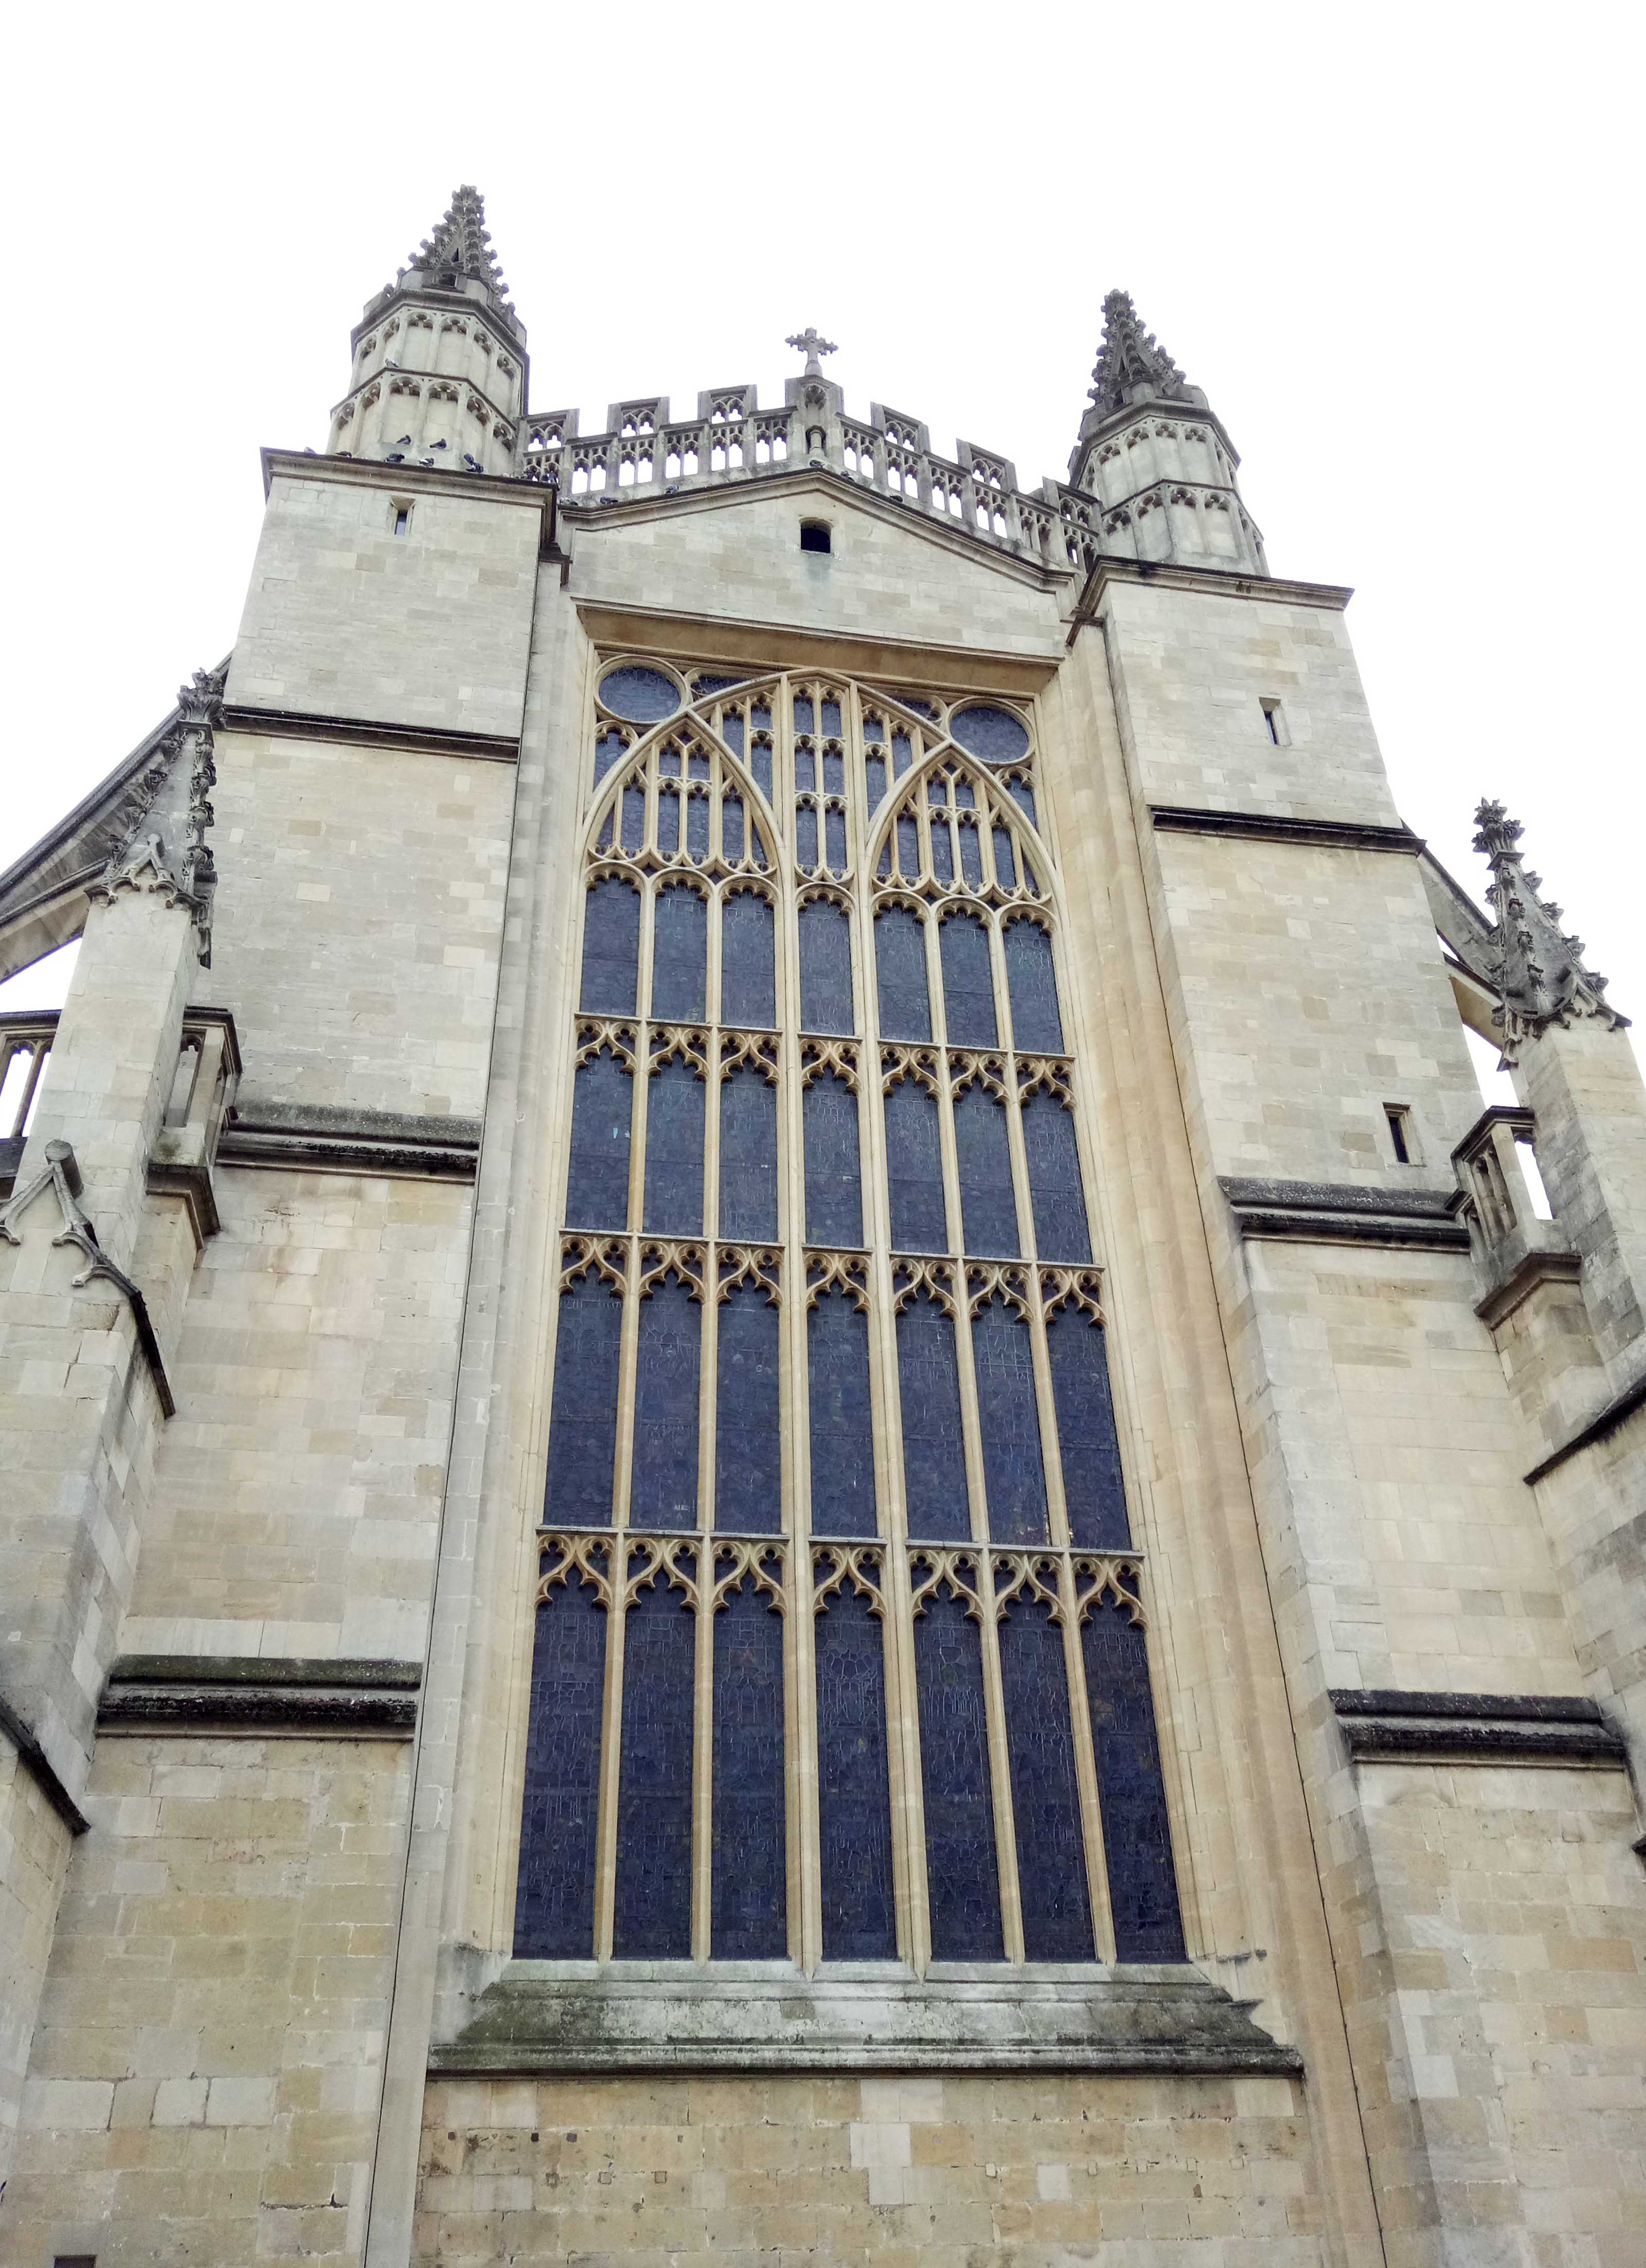 The Bath Abbey